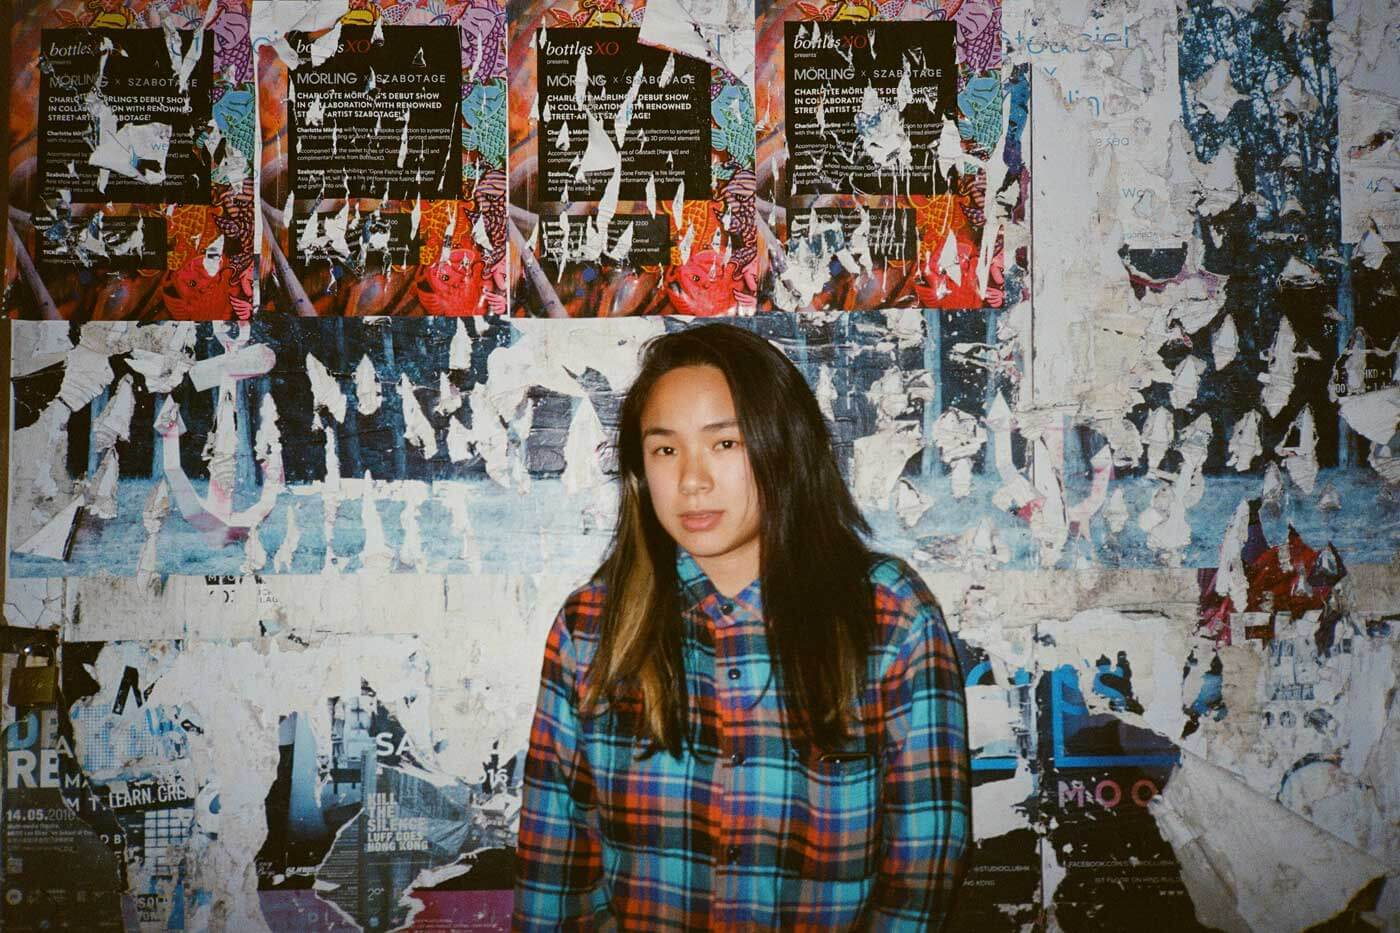 kodak-ultramax-400-iso-film-review-yashica-t5-michelle-portrait-flash-with-poster-background-checked-shirt-look